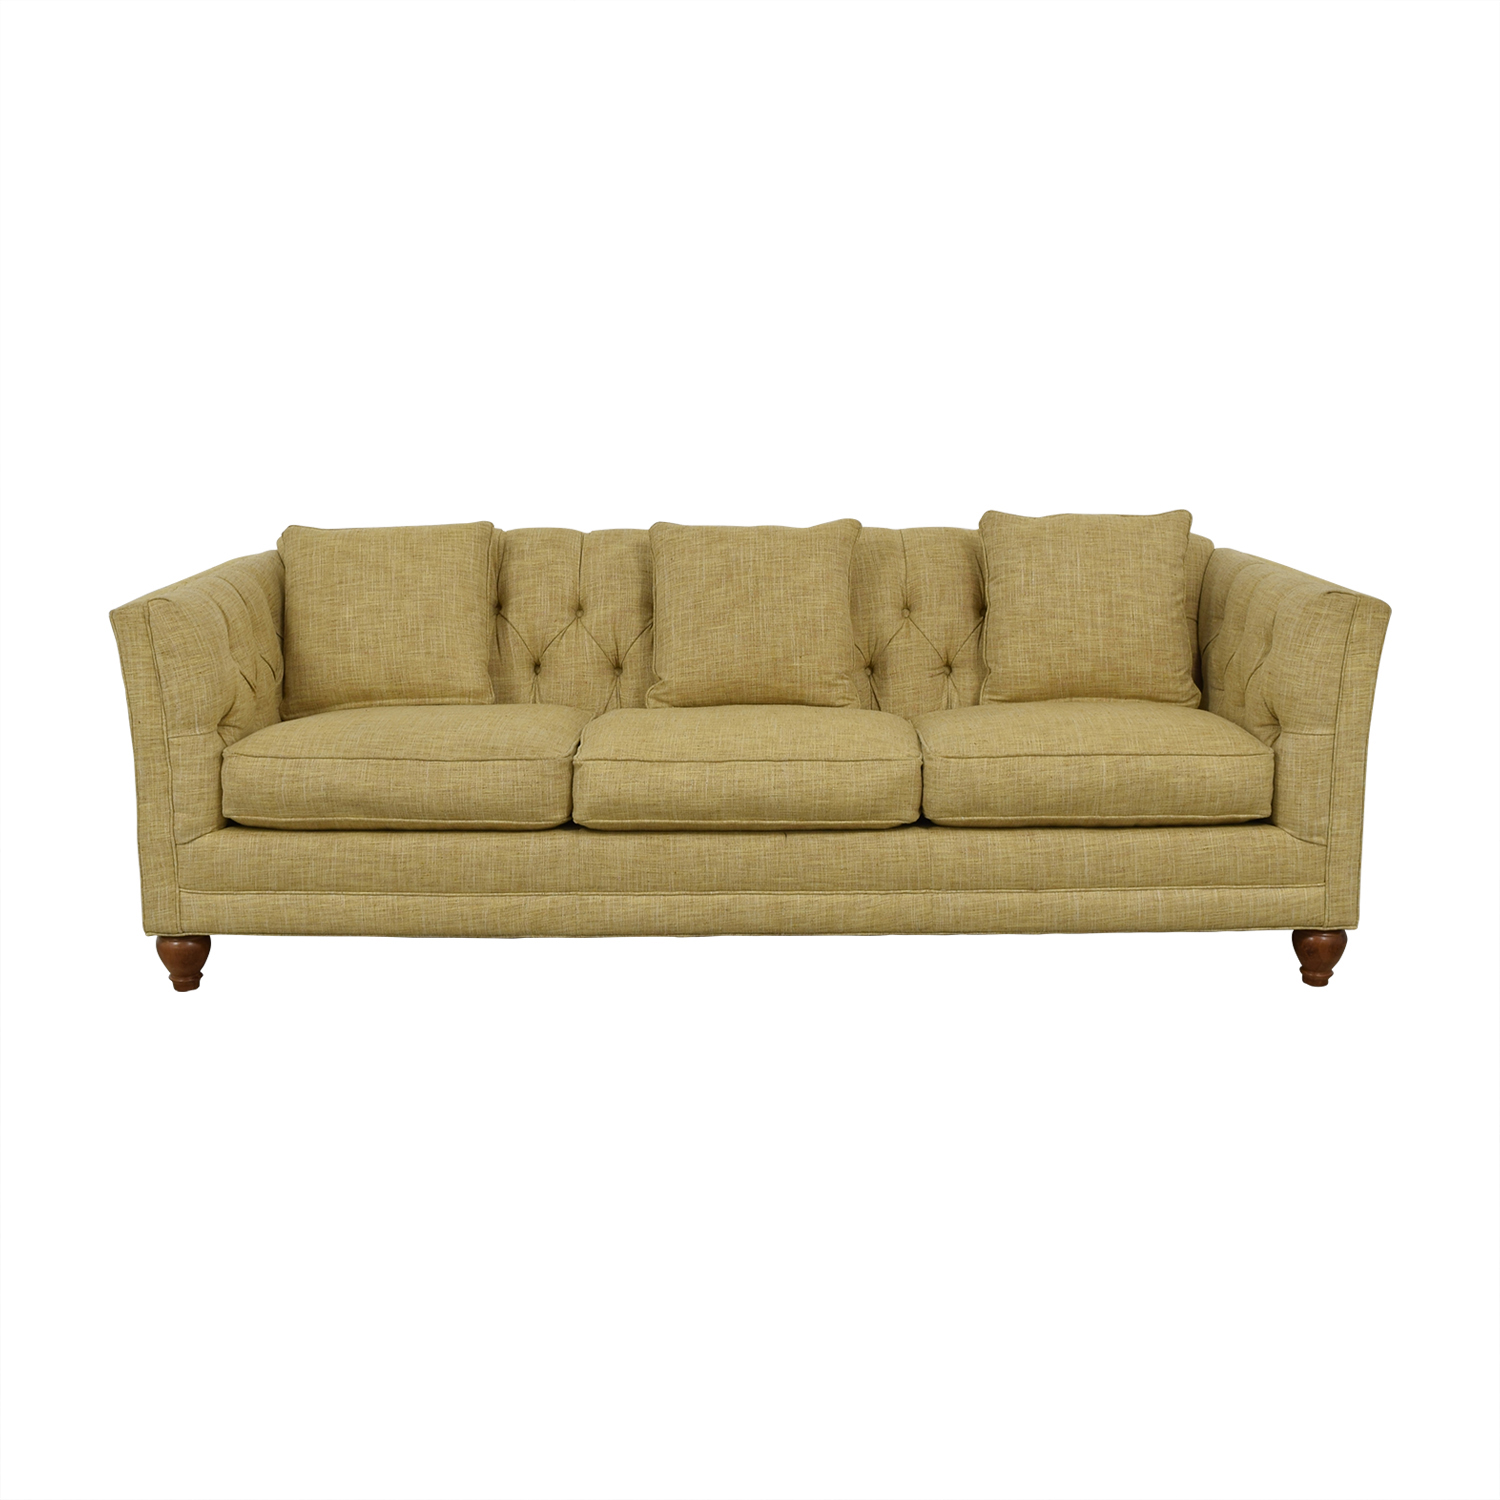 shop Country Willow Tan Three-Cushion Sofa Country Willow Sofas